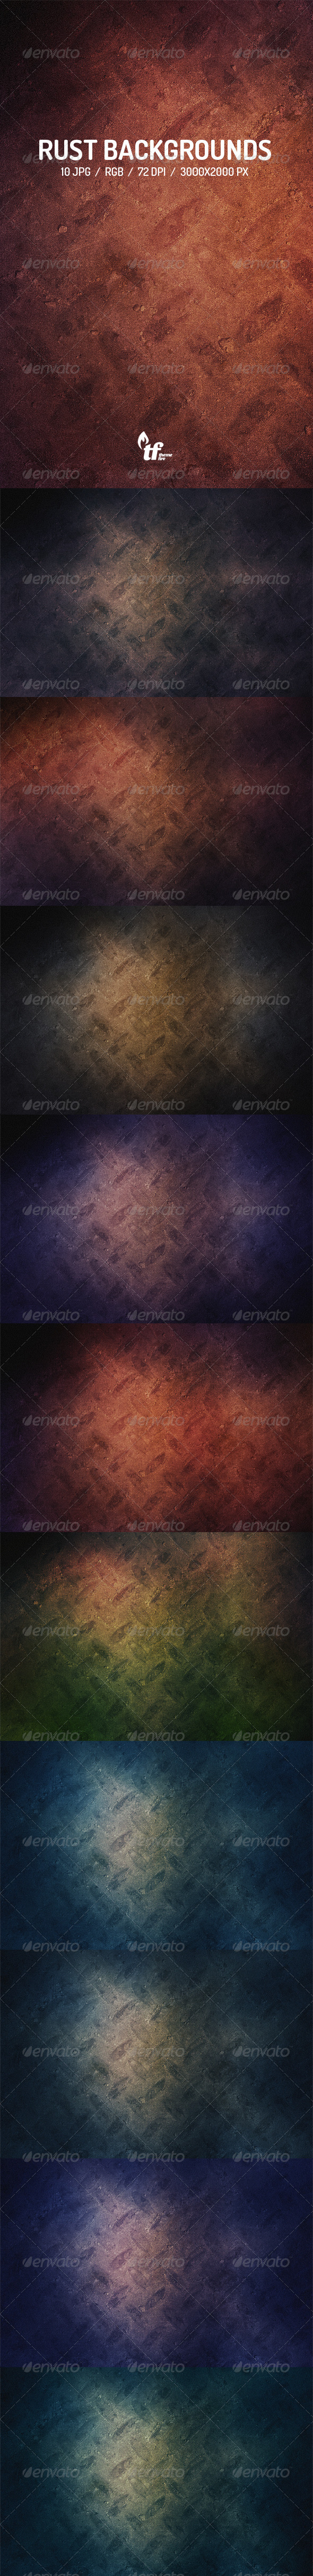 GraphicRiver 10 Rust Backgrounds 7572038